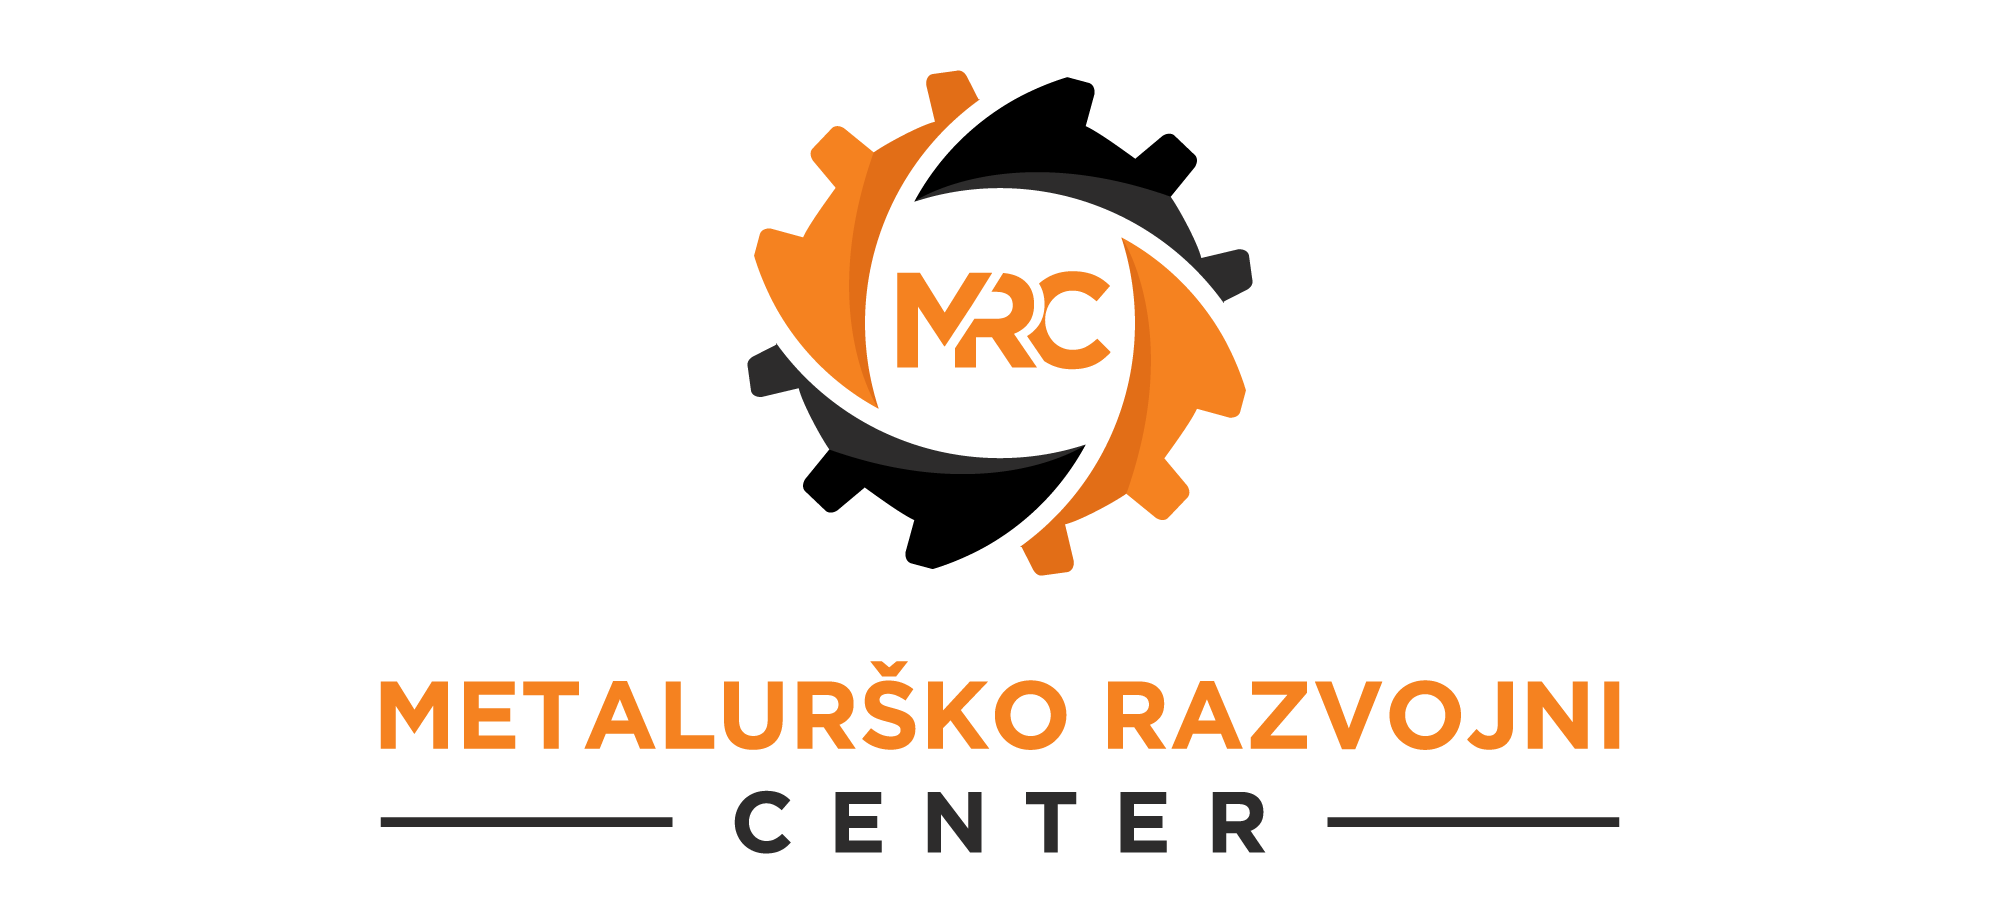 MRC – Metalurško razvojni center